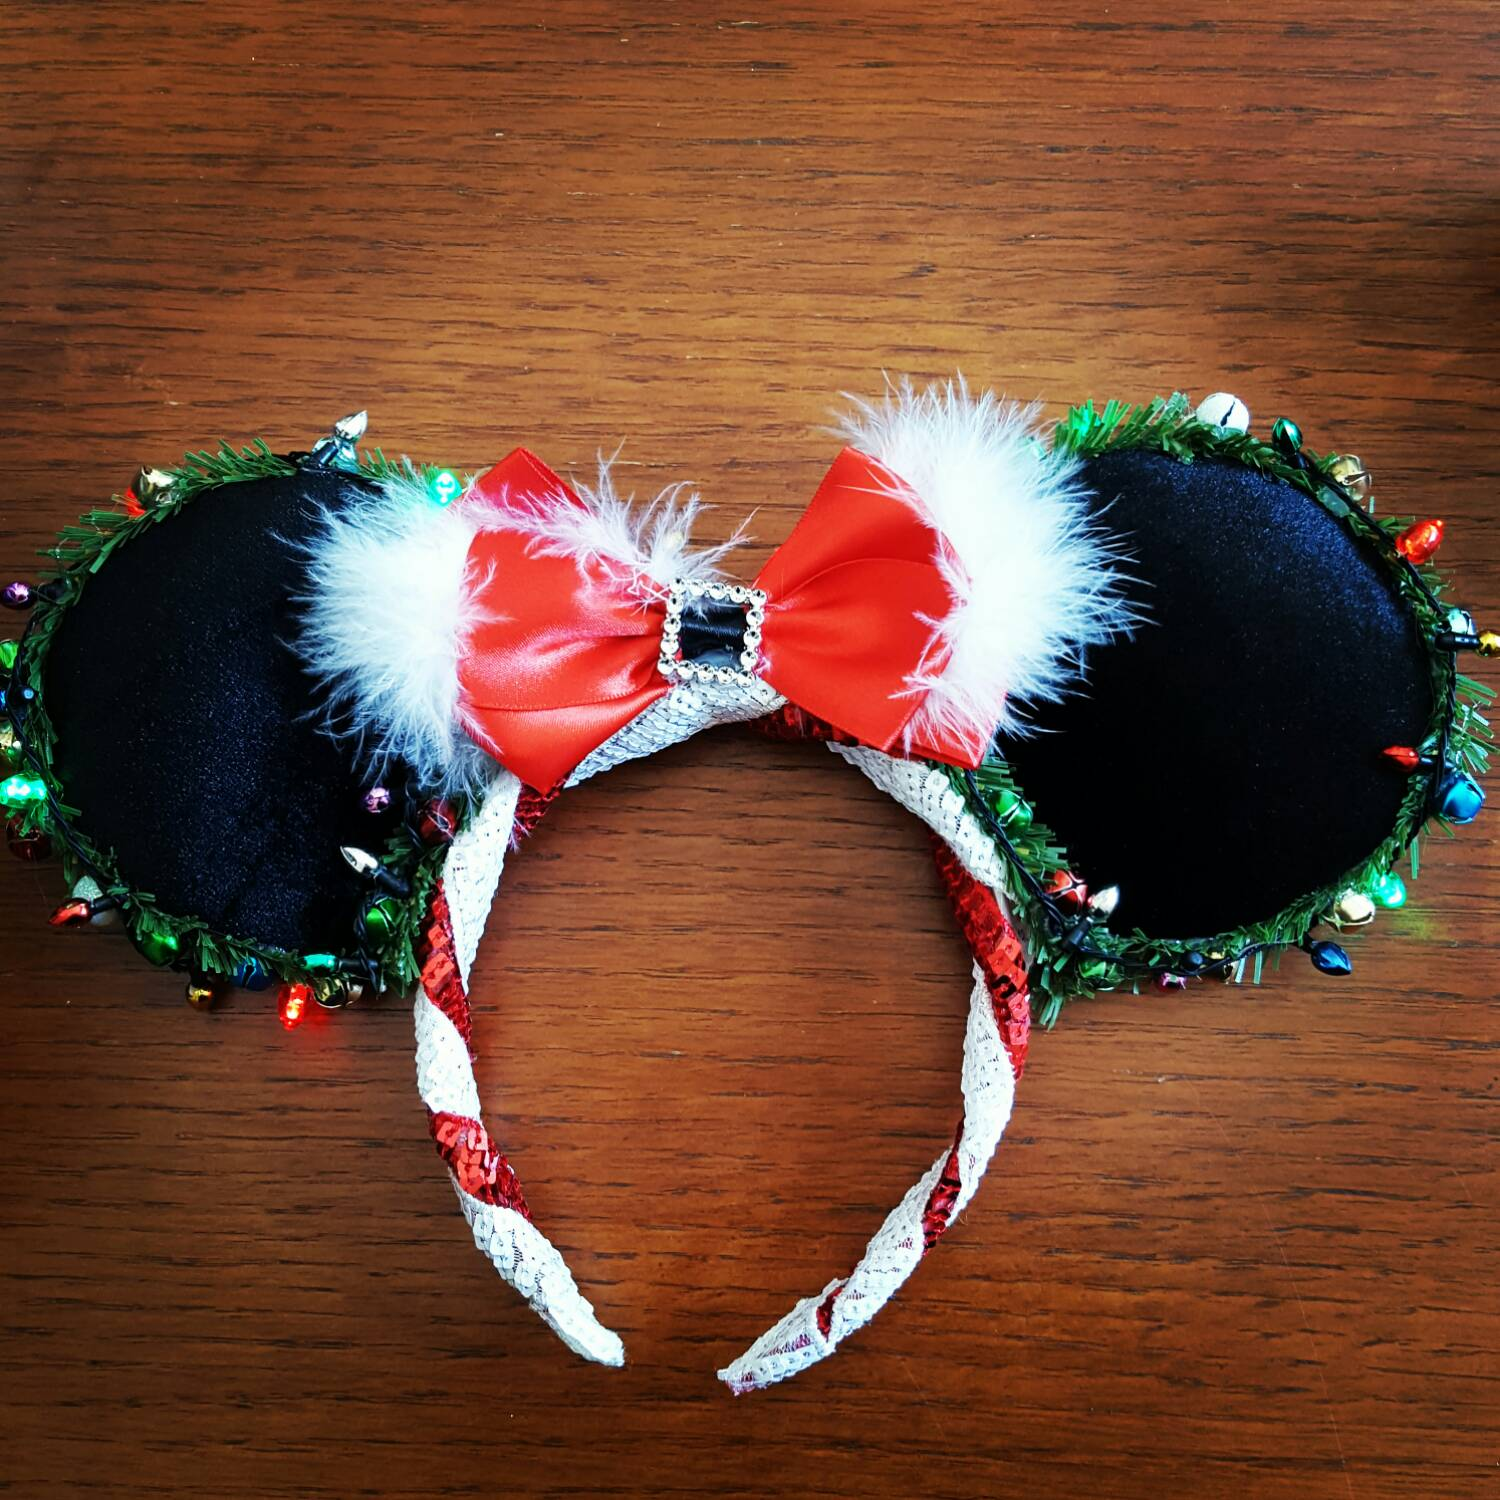 do you have any customer stories that stick out in your mind there was a customer from the uk who ordered a pair of christmas ears and had her honeymoon at